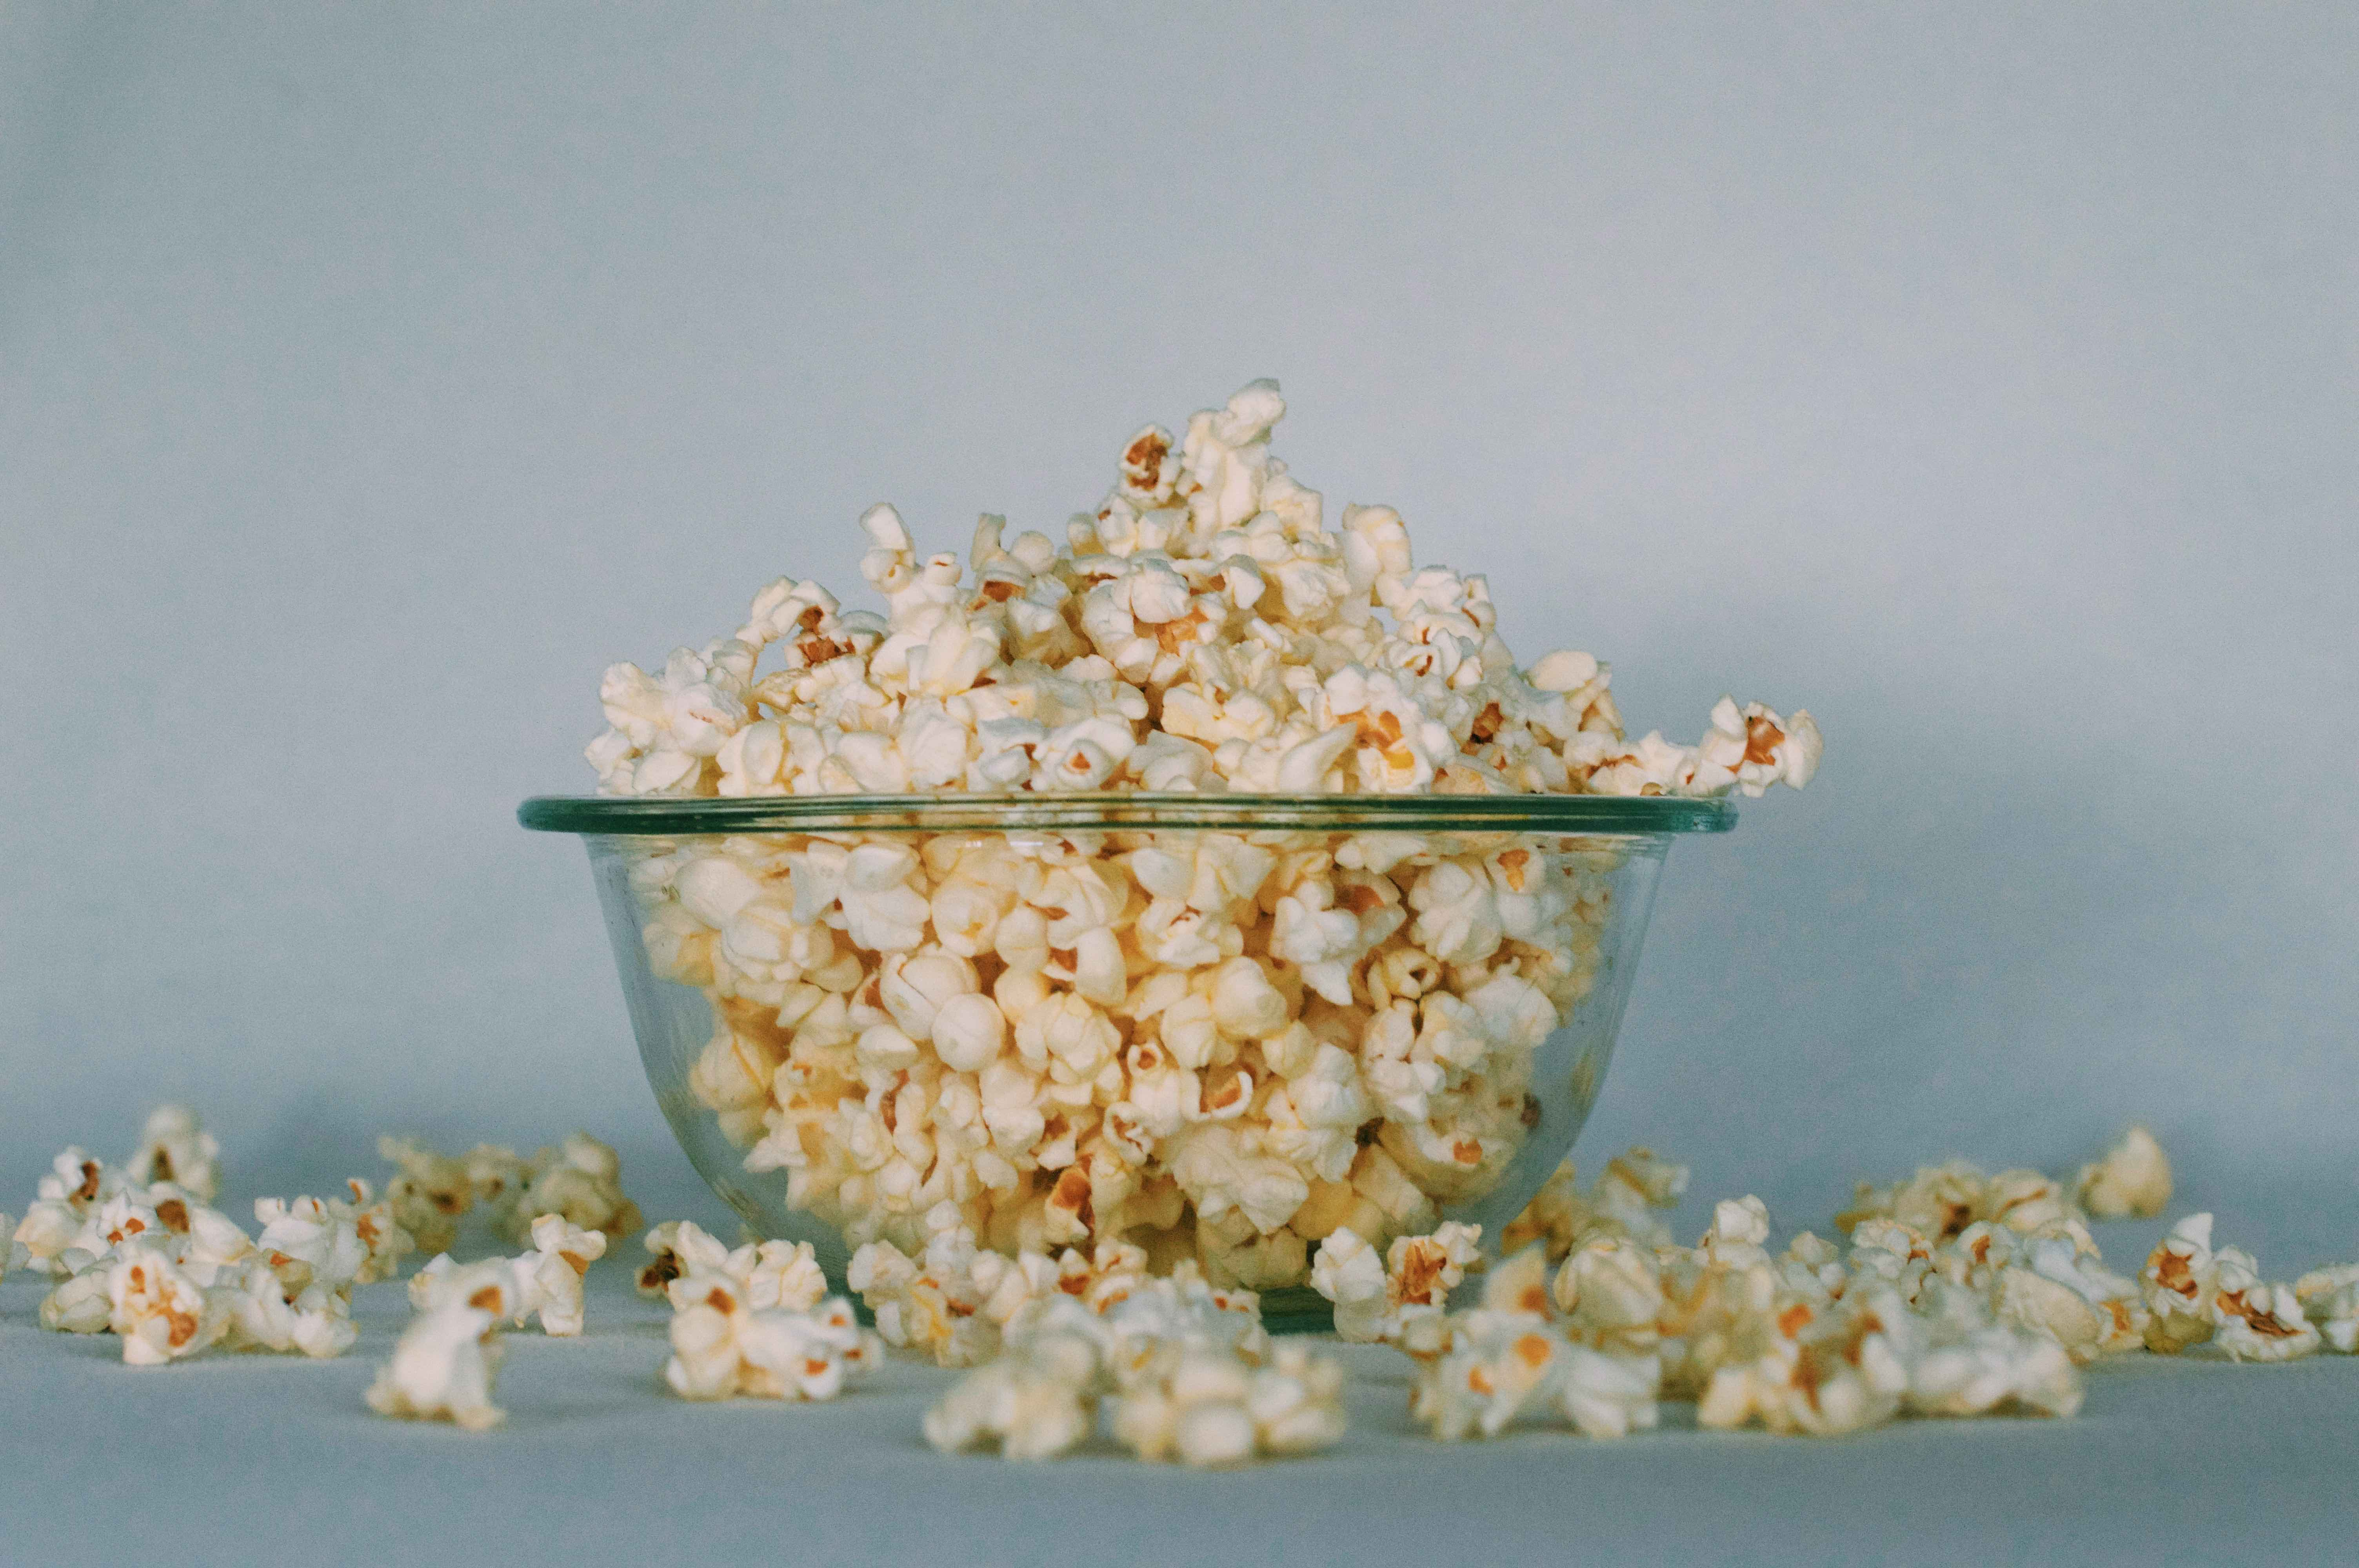 Popcorn for low calorie snacks